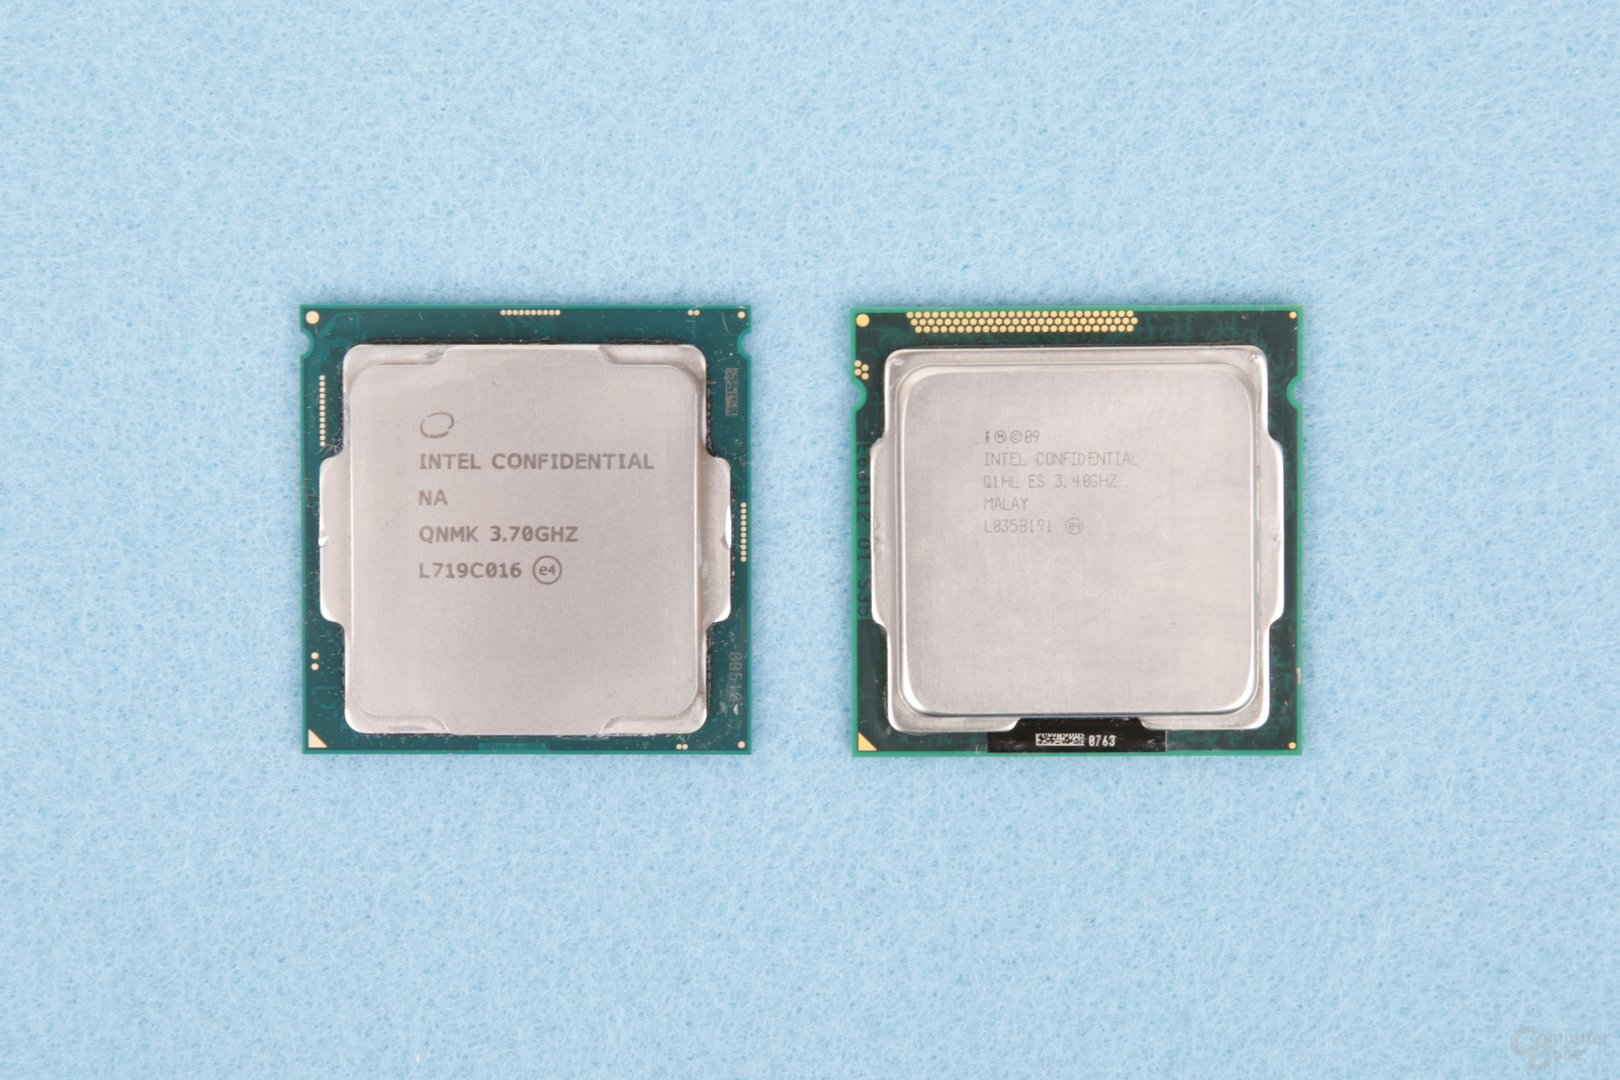 Intel Core i7-2600K und Intel Core i7-8700K als Engineering Sample